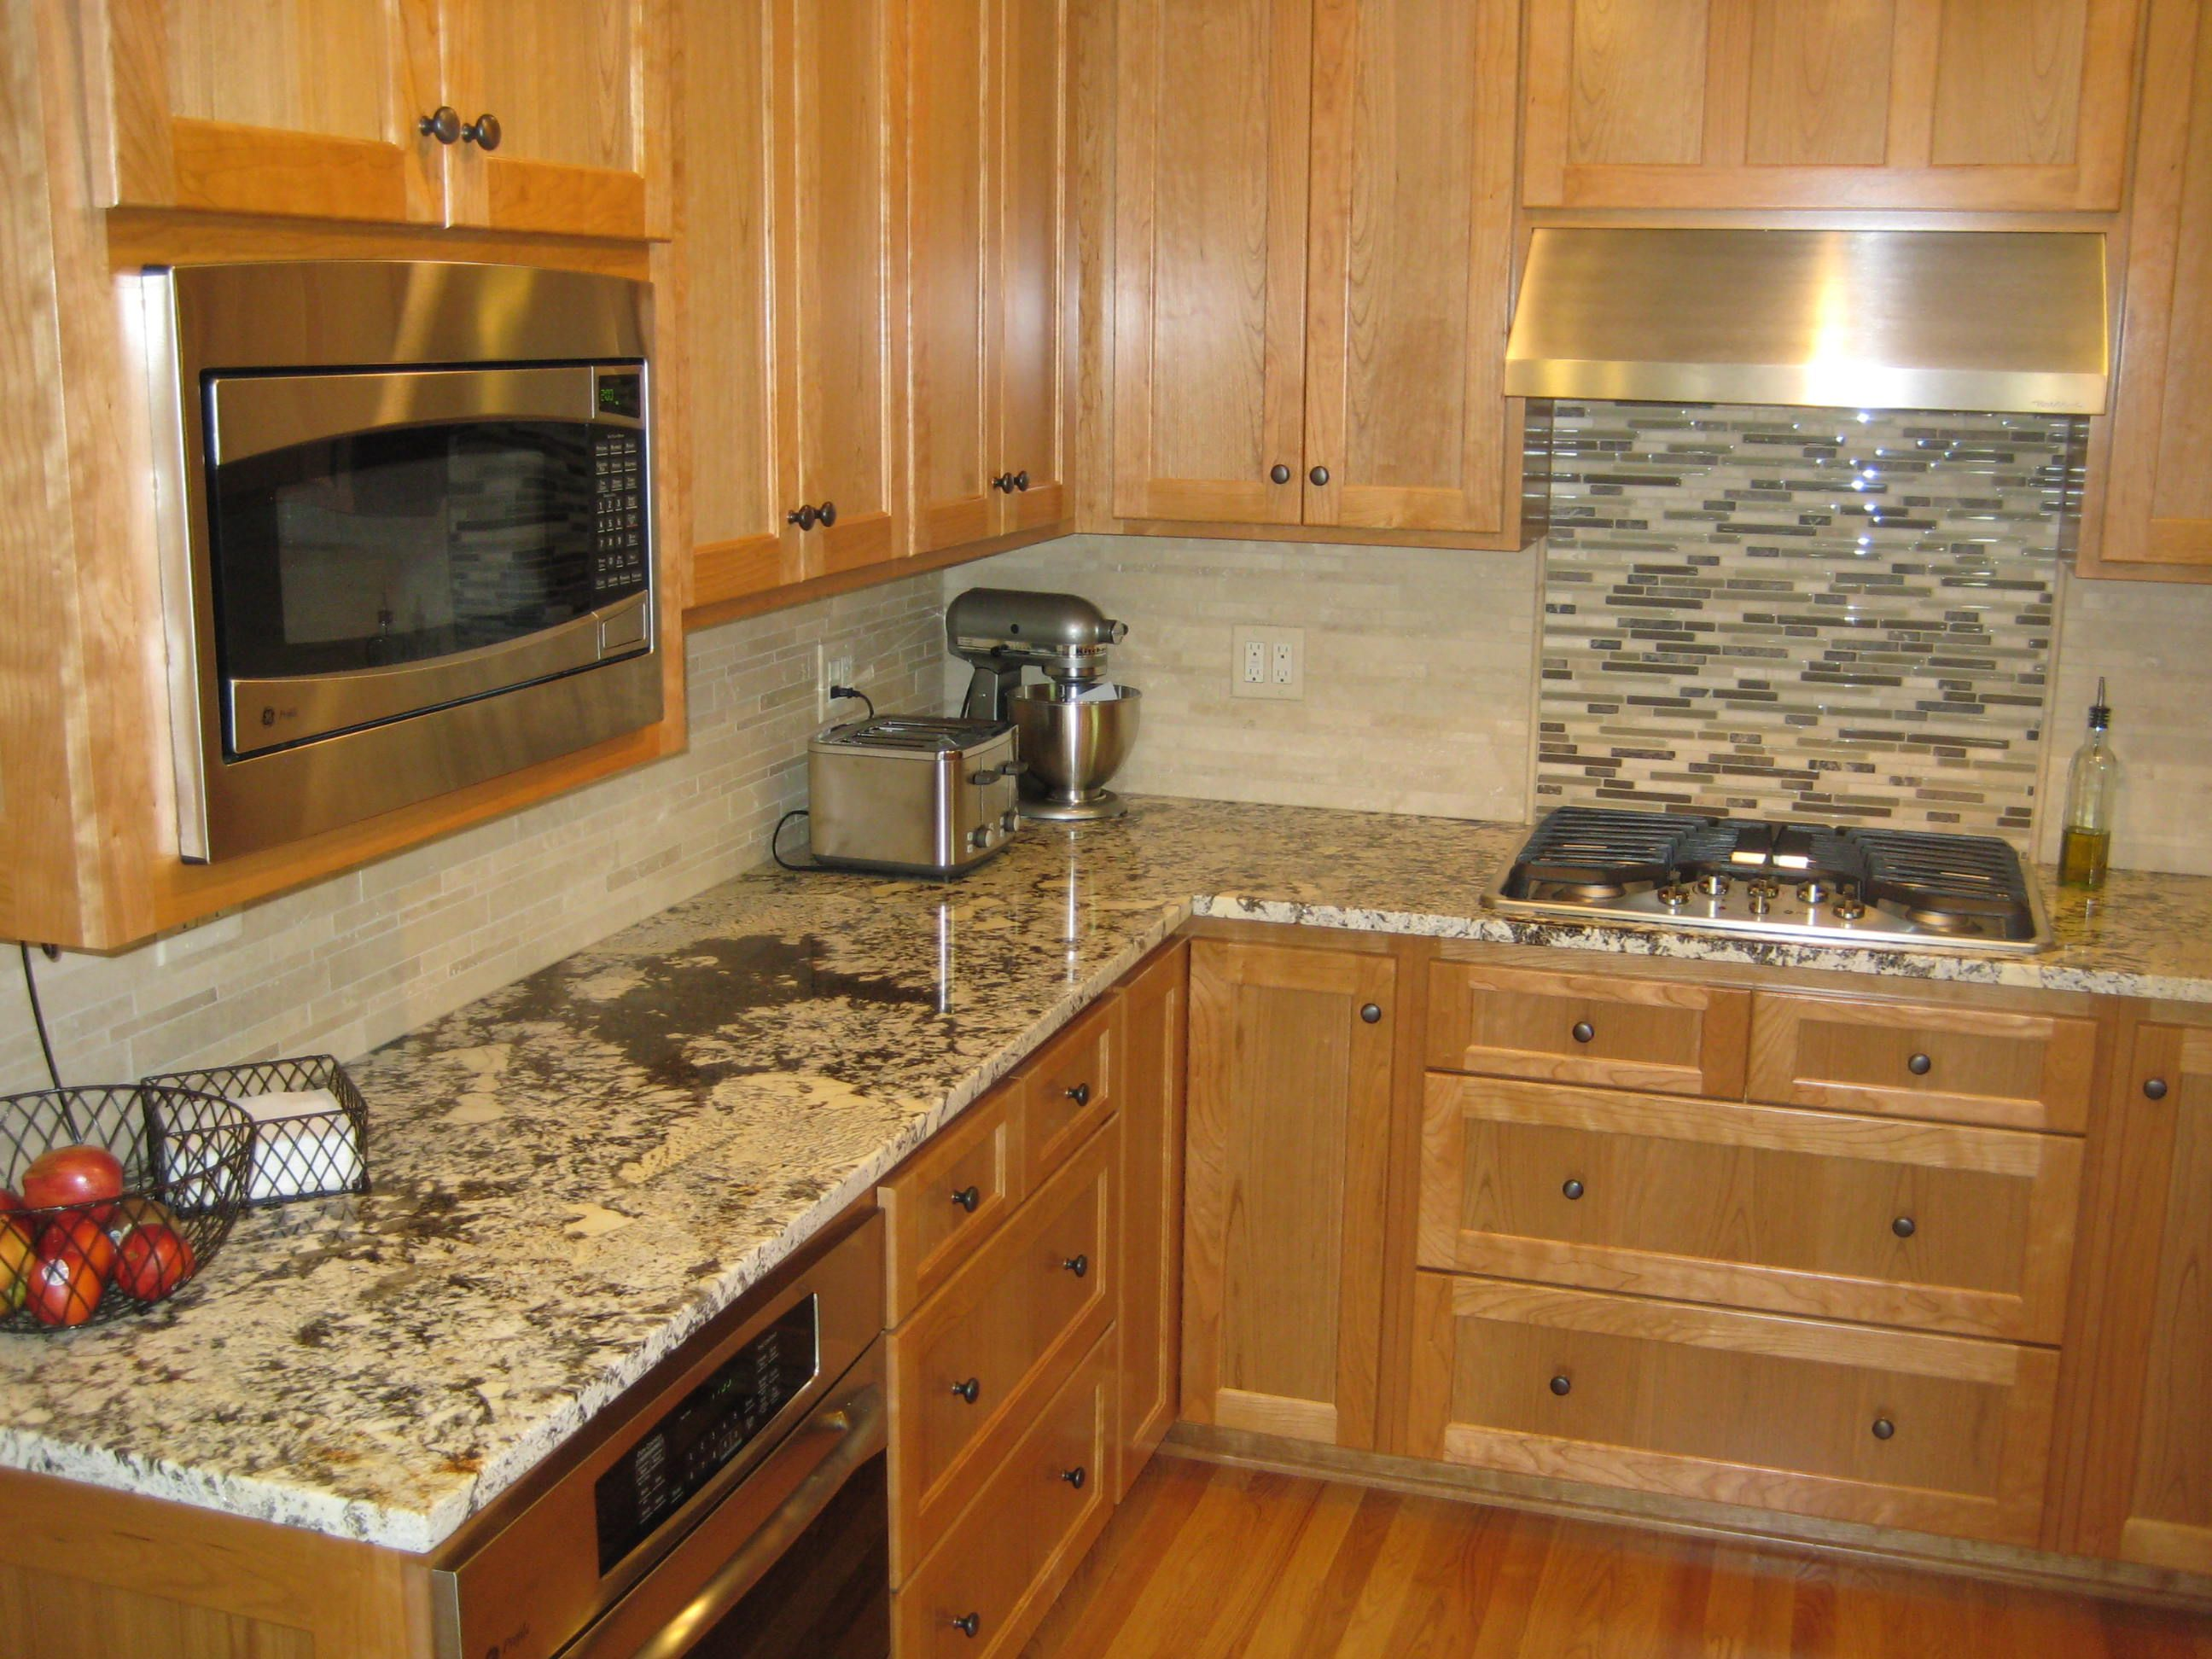 Kitchen Counter And Backsplash Ideas The Granite Color Of The Countertop Is Santa Cecilia  Kitchen .